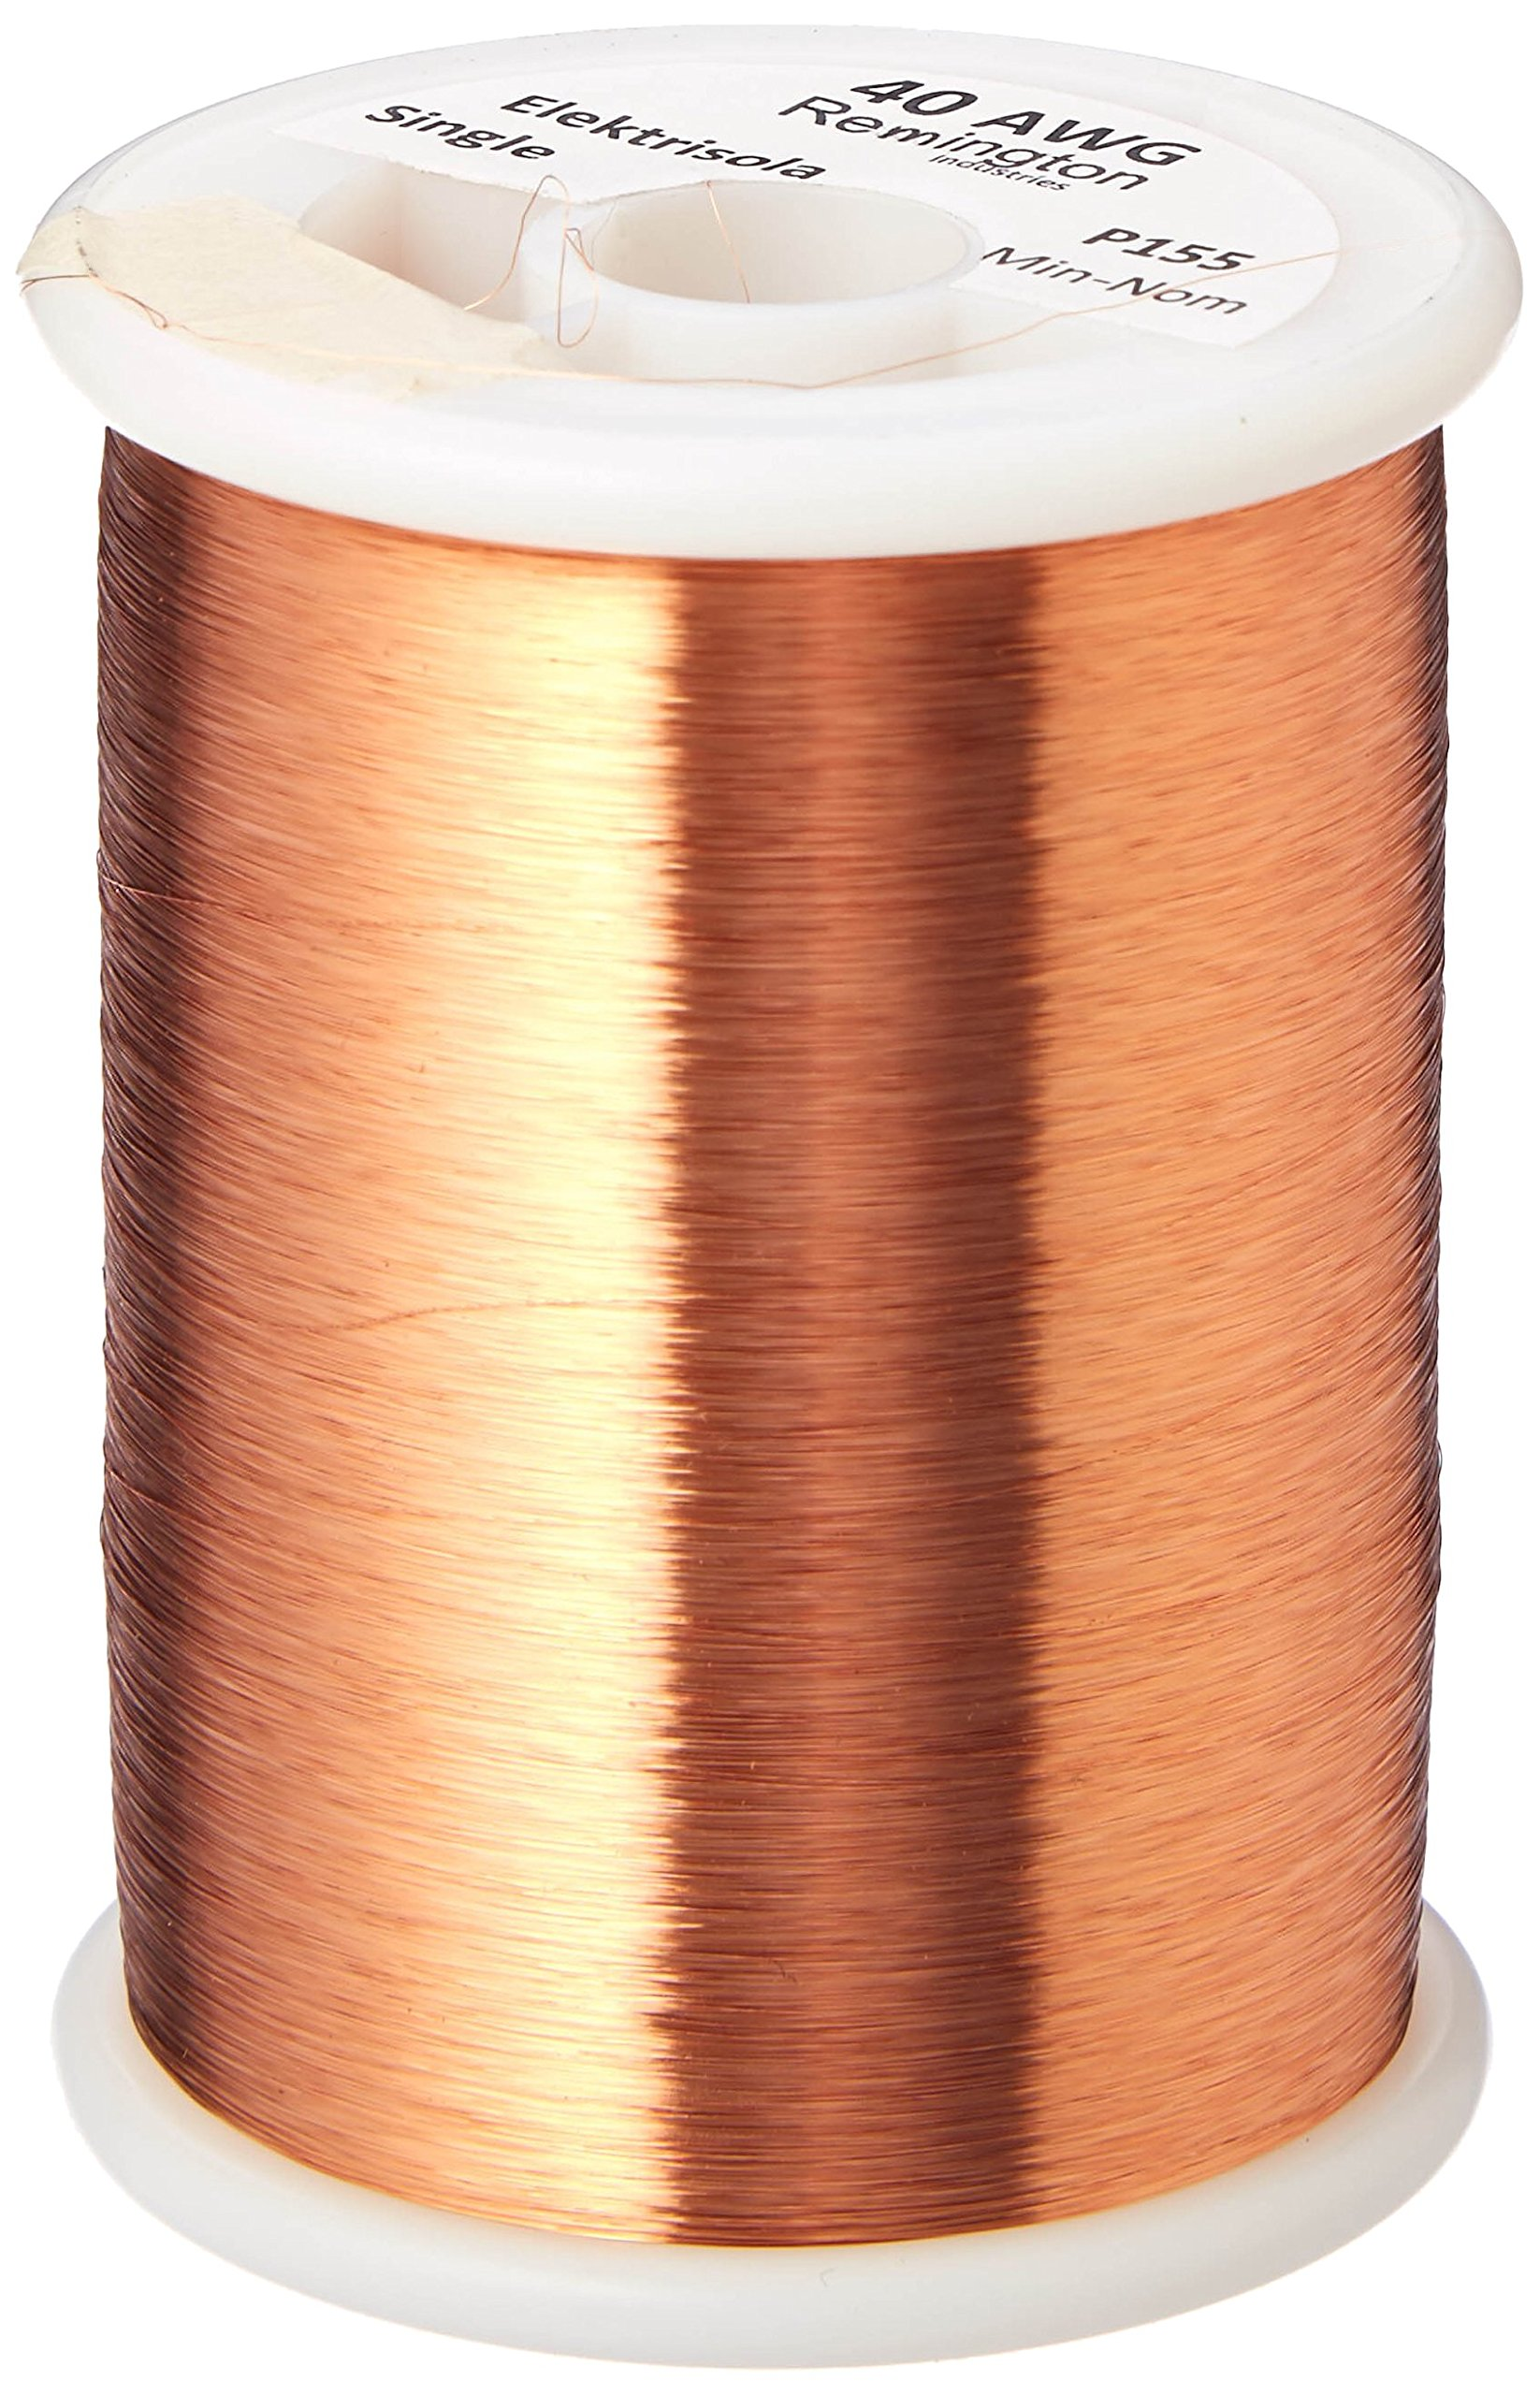 Remington Industries 40SNSP 40 AWG Magnet Wire, Enameled Copper Wire, 1.0 lb, 0.0034'' Diameter, 33217' Length, Natural